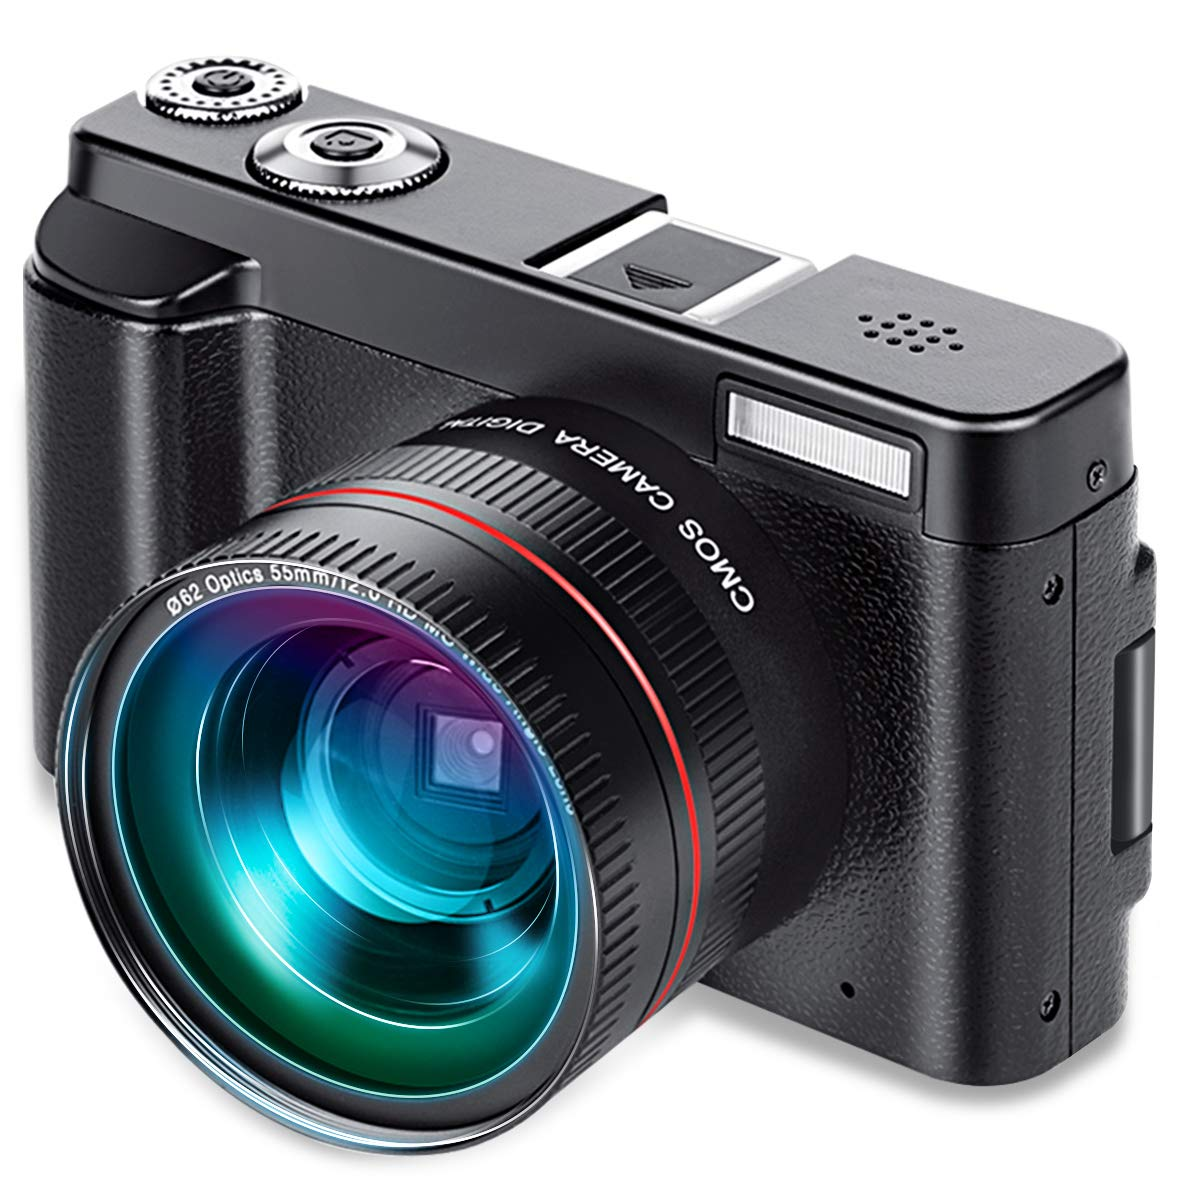 Vlogging Camera, Video Camcorder FHD 1080p 24MP Digital Camera WIFI YouTube  Camera Camcorder With Wide Angle Lens, 180 Degree Rotation Flip Screen,